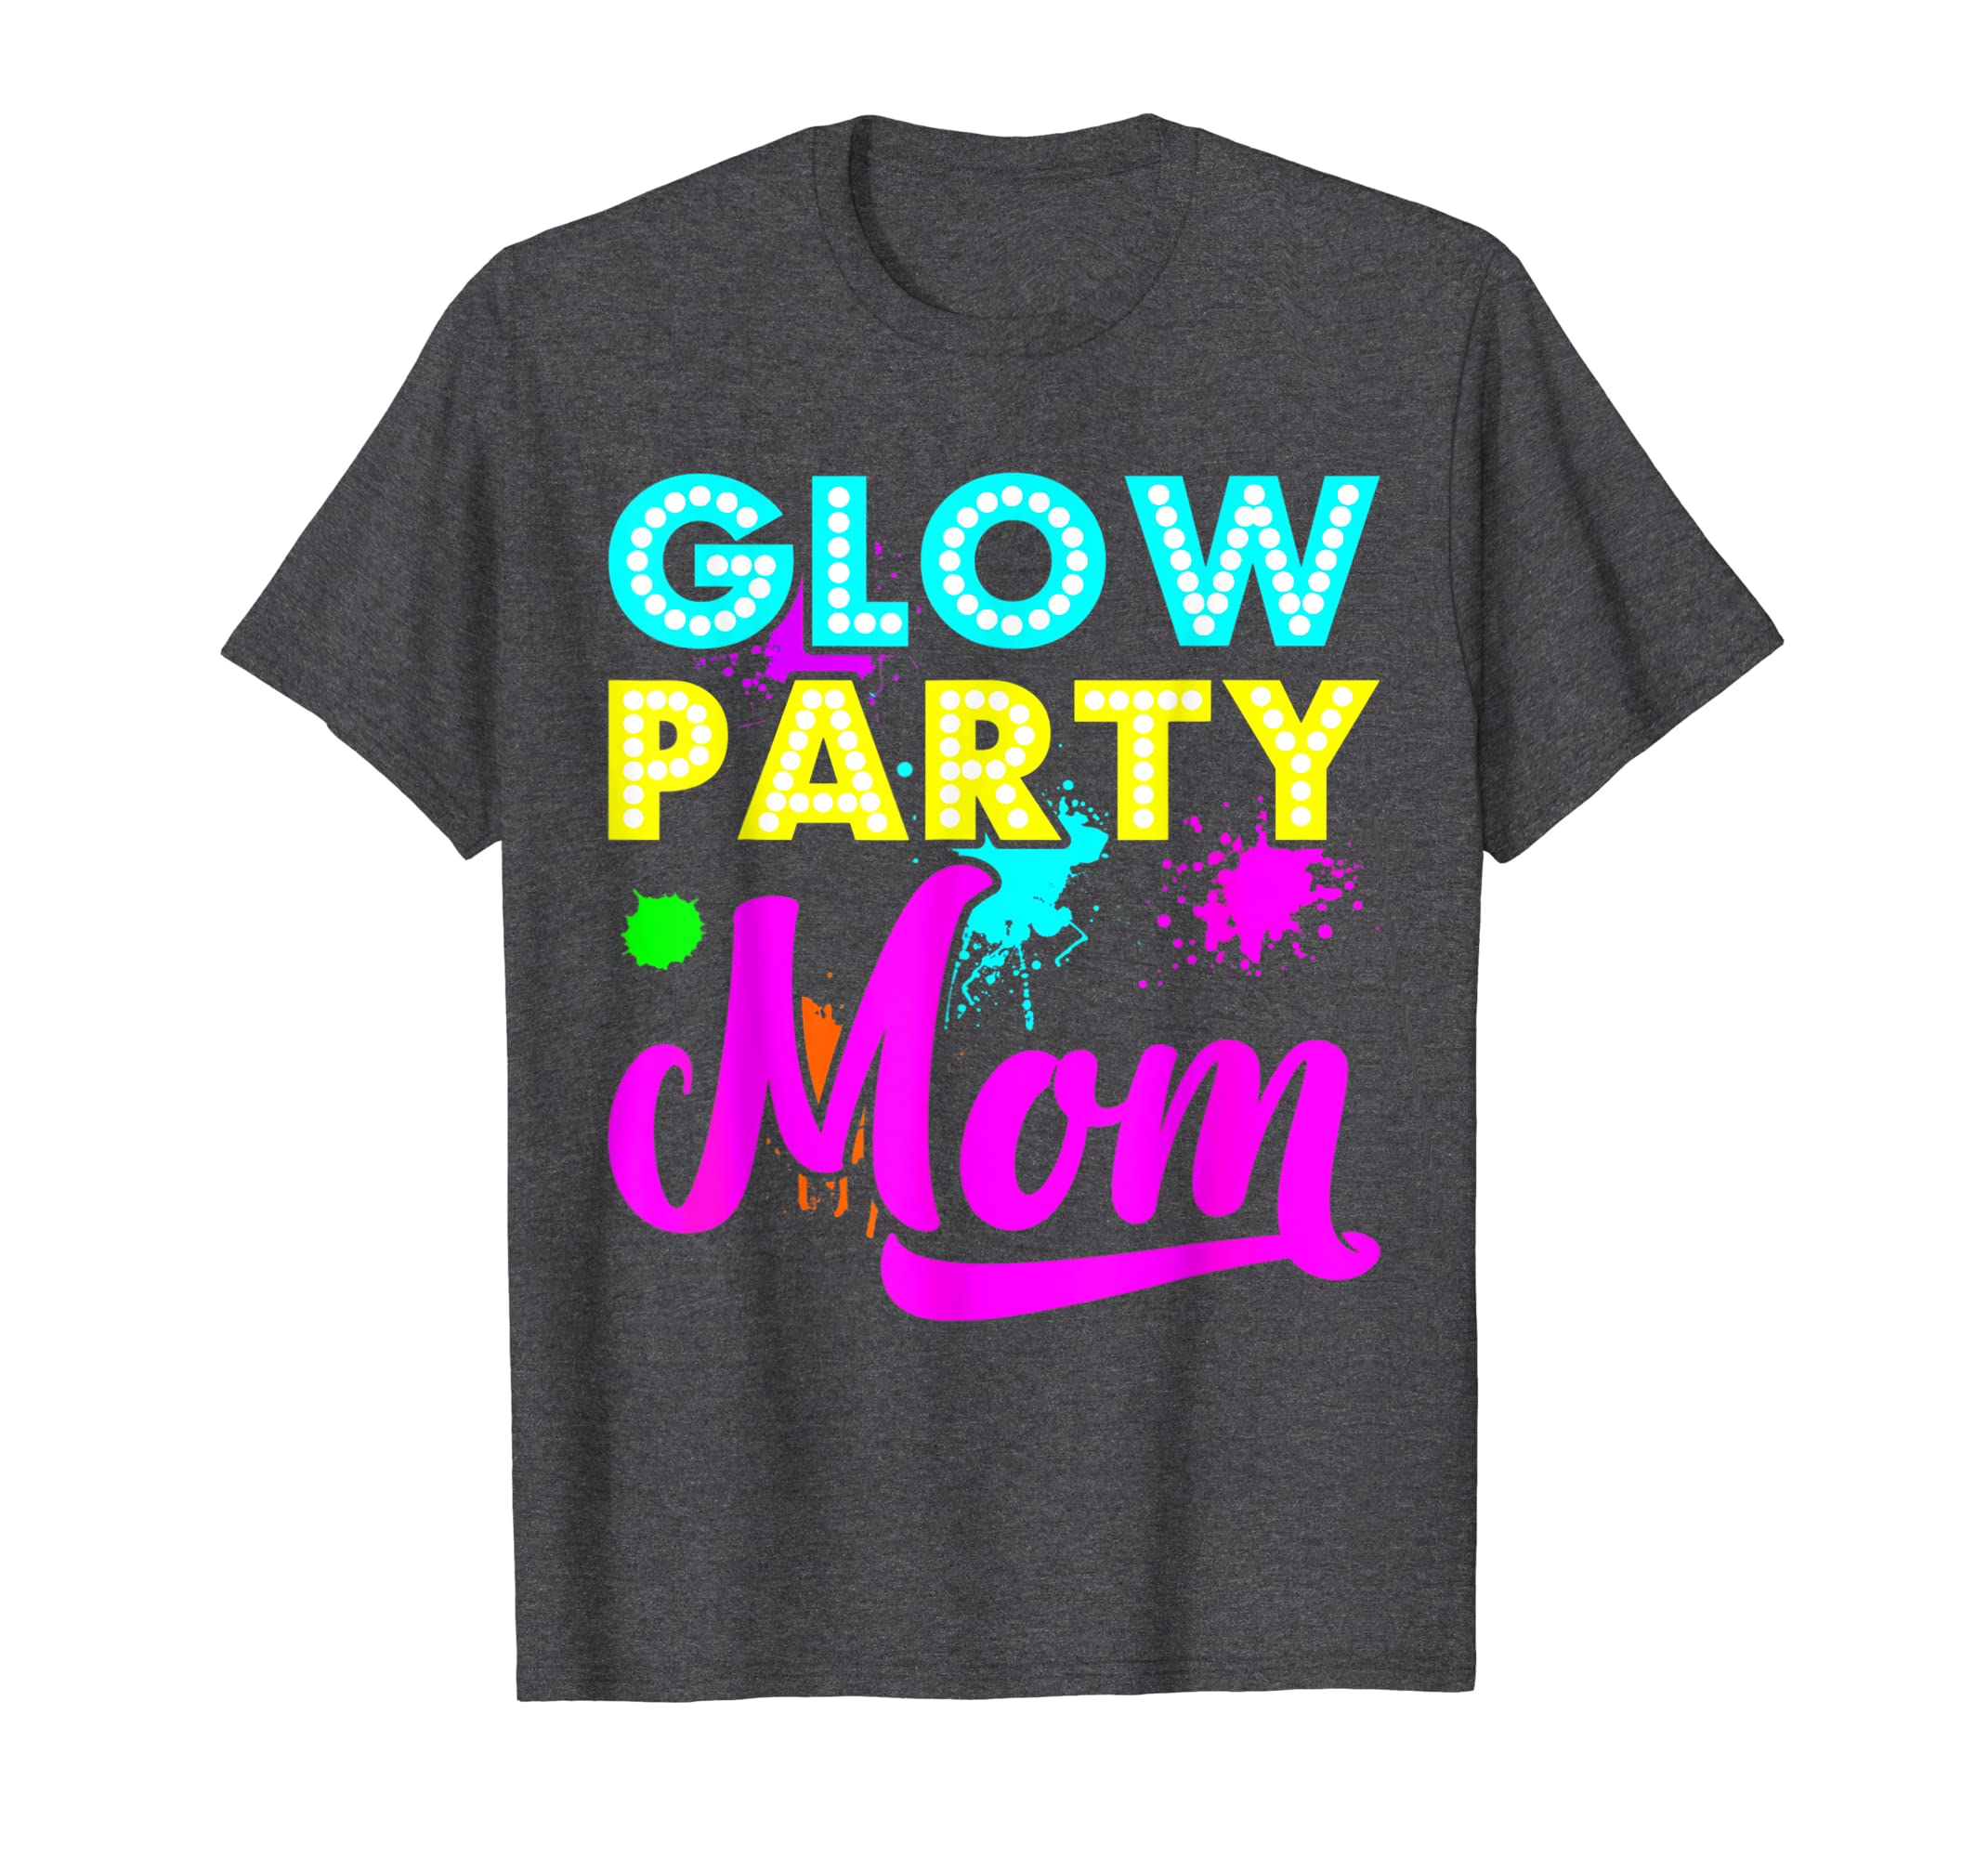 Glow Party Clothing Glow Party T Shirt Glow Party Mom-Teehay